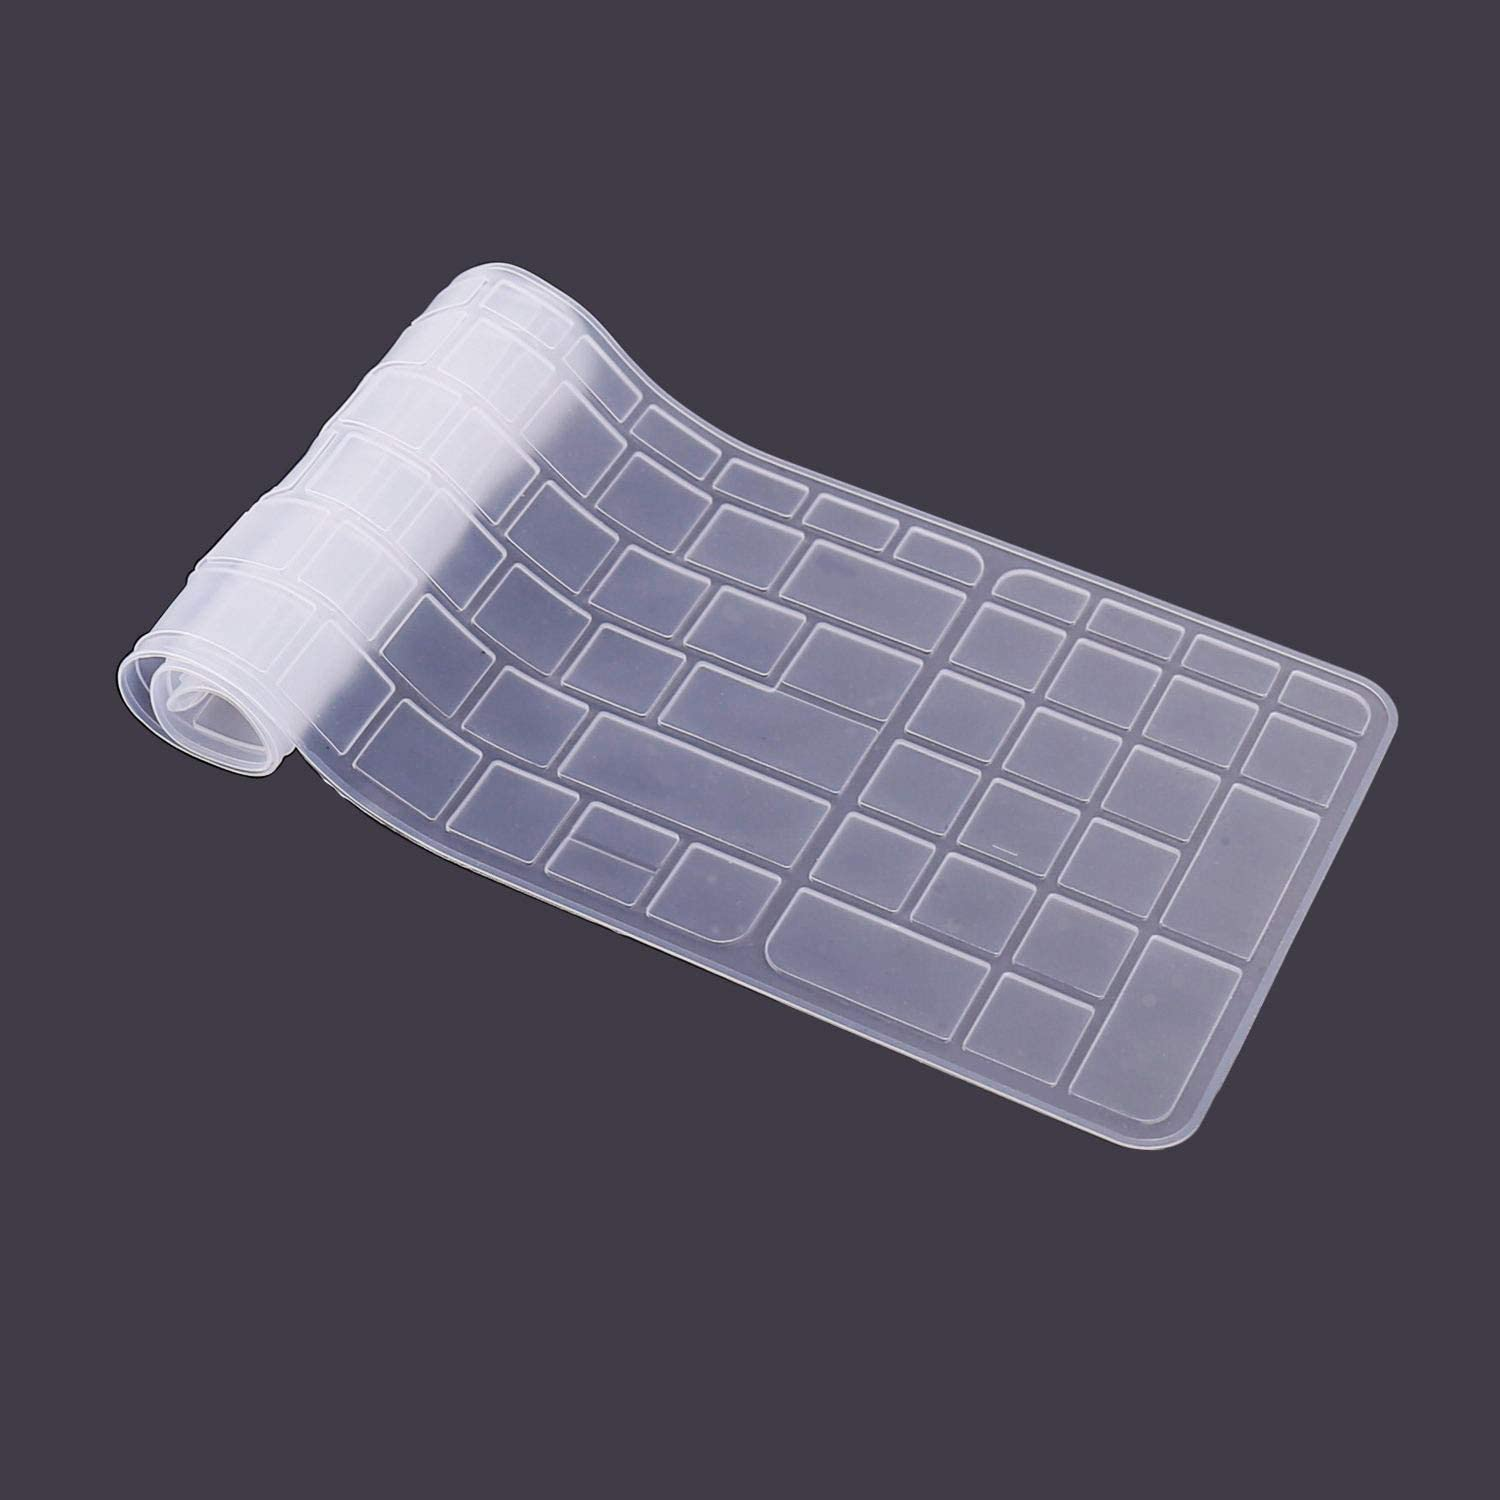 Saco Keyboard Silicon Protector Cover for HP 15-AC047TU 15.6-inch Laptop Transparent